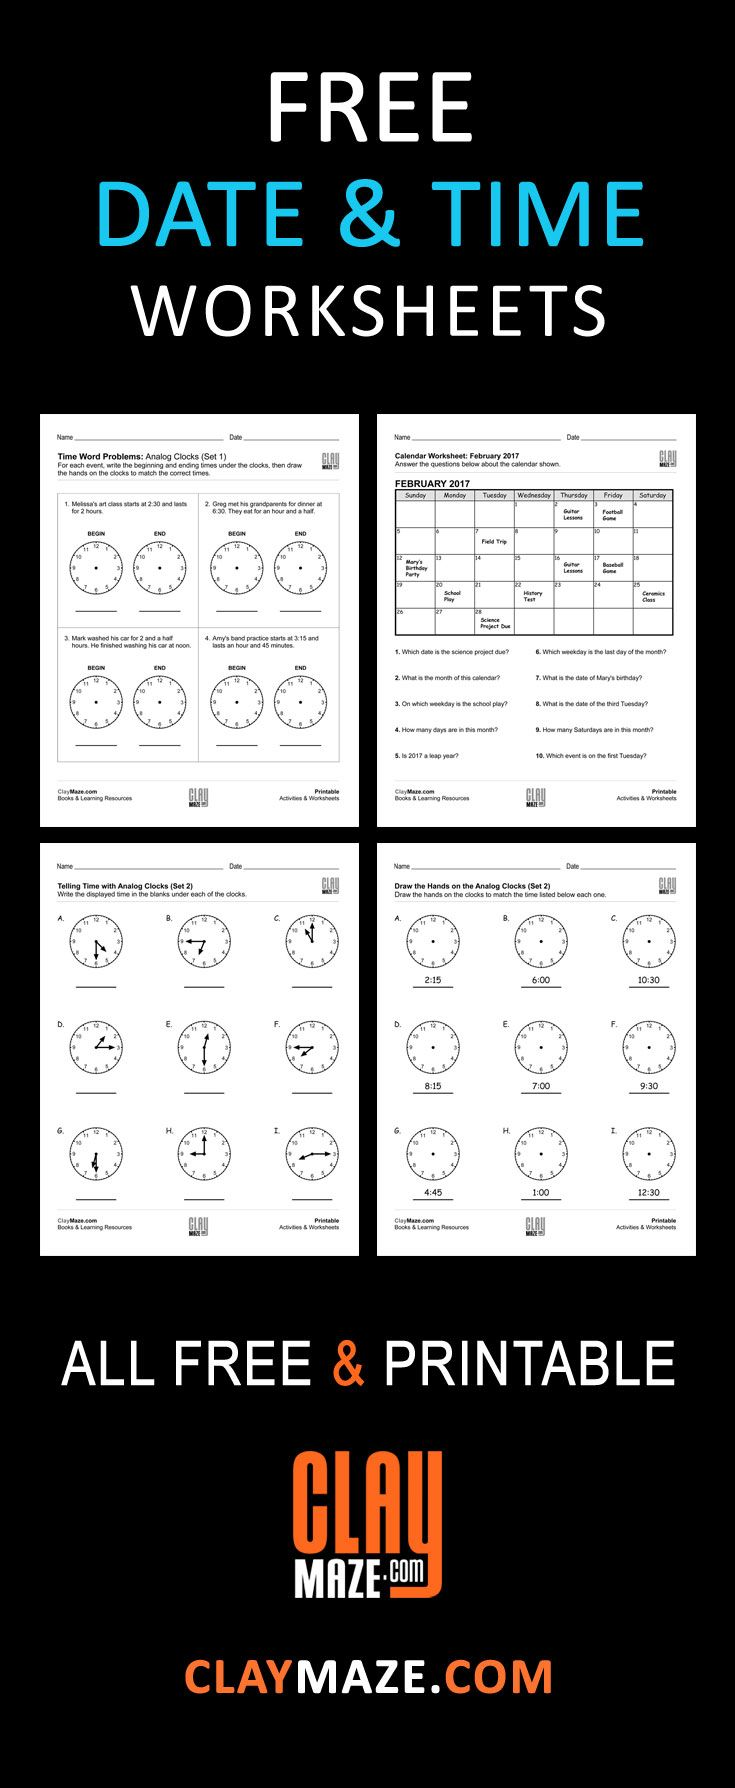 Free Children S Date And Time Worksheets This Collection Conta Addition And Subtraction Worksheets Fractions Worksheets Multiplication And Division Worksheets